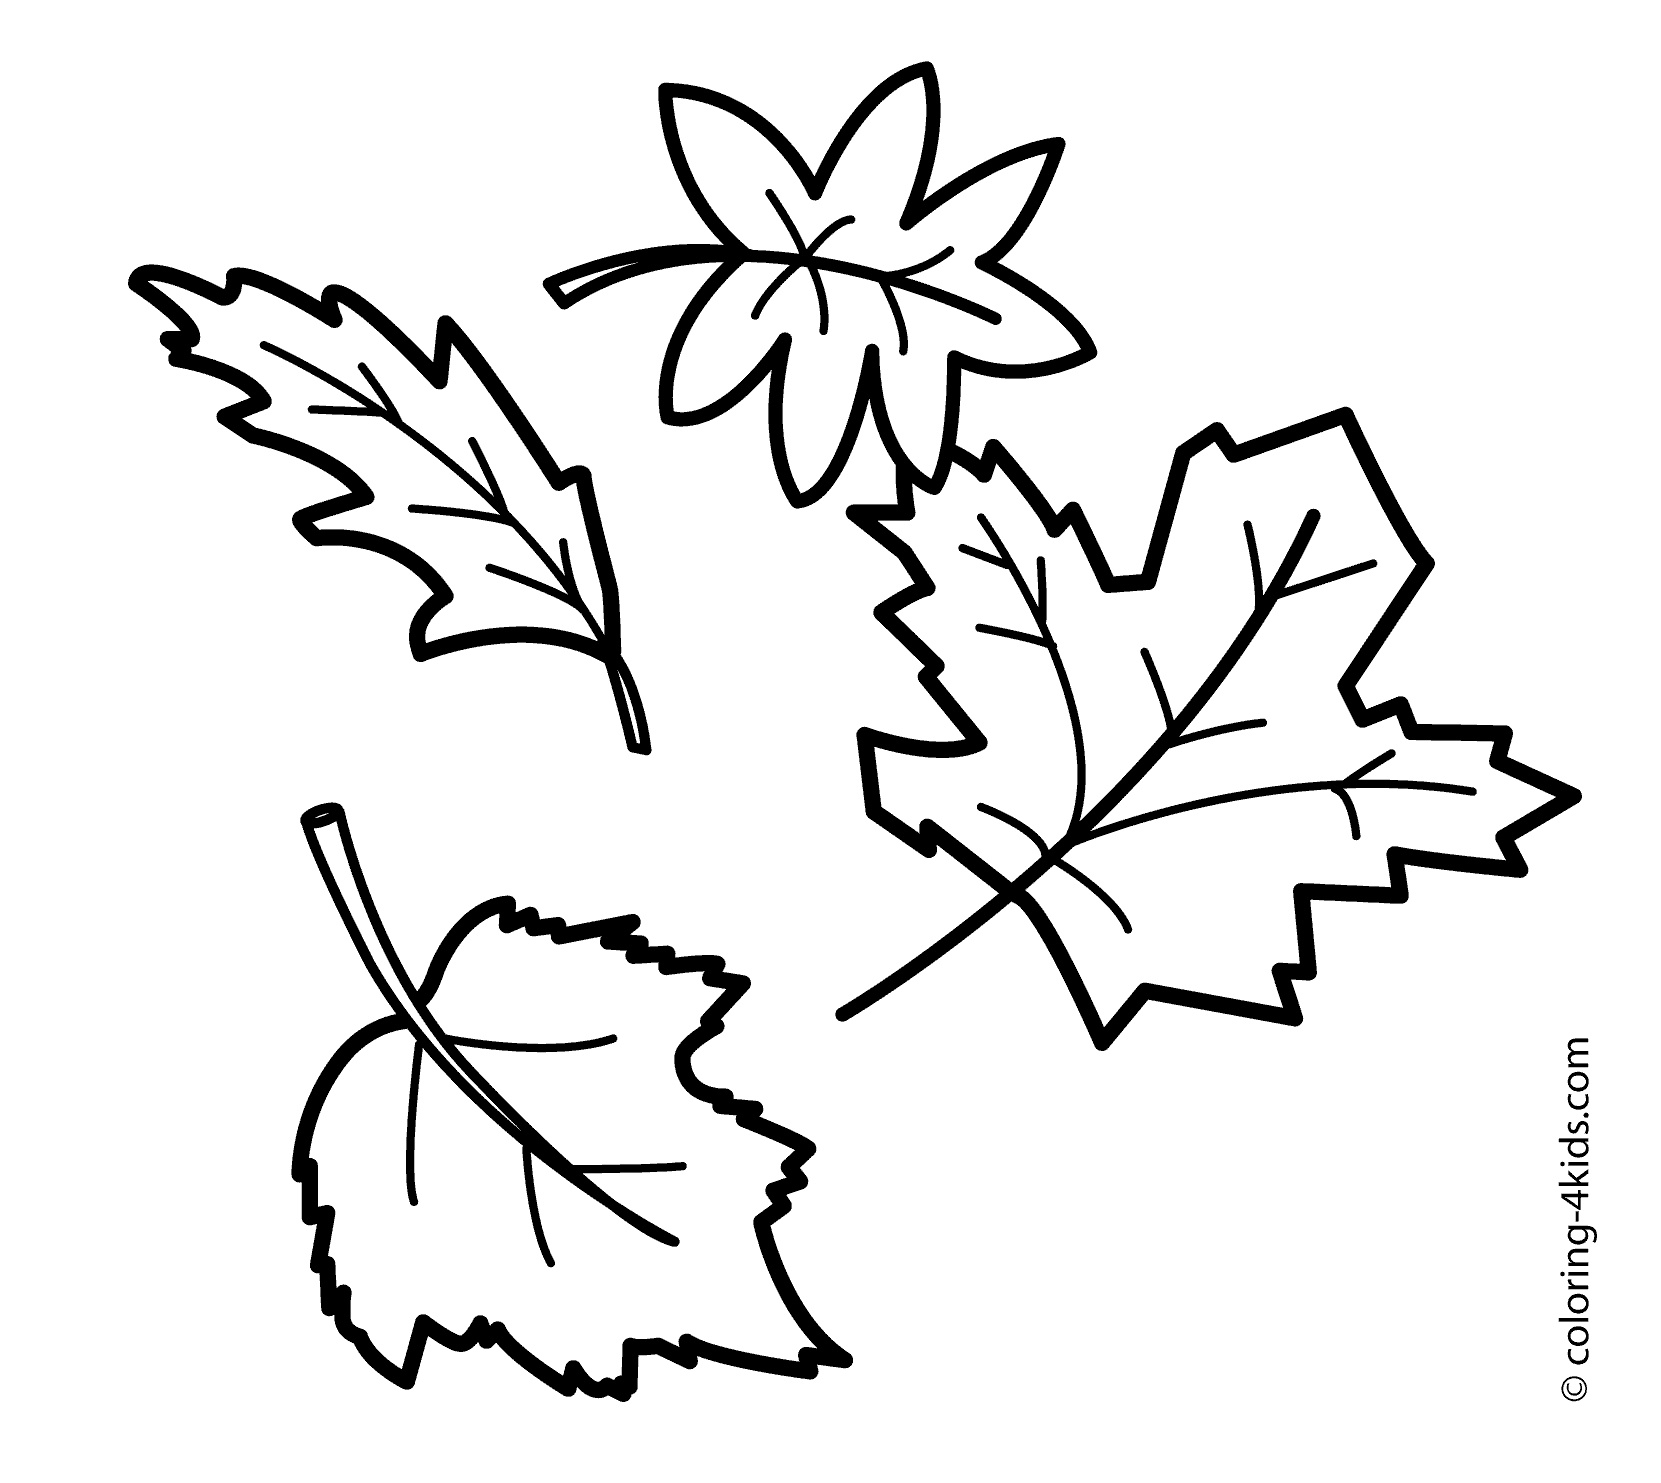 1661x1483 fall leaves coloring pages - Fall Leaf Coloring Pages